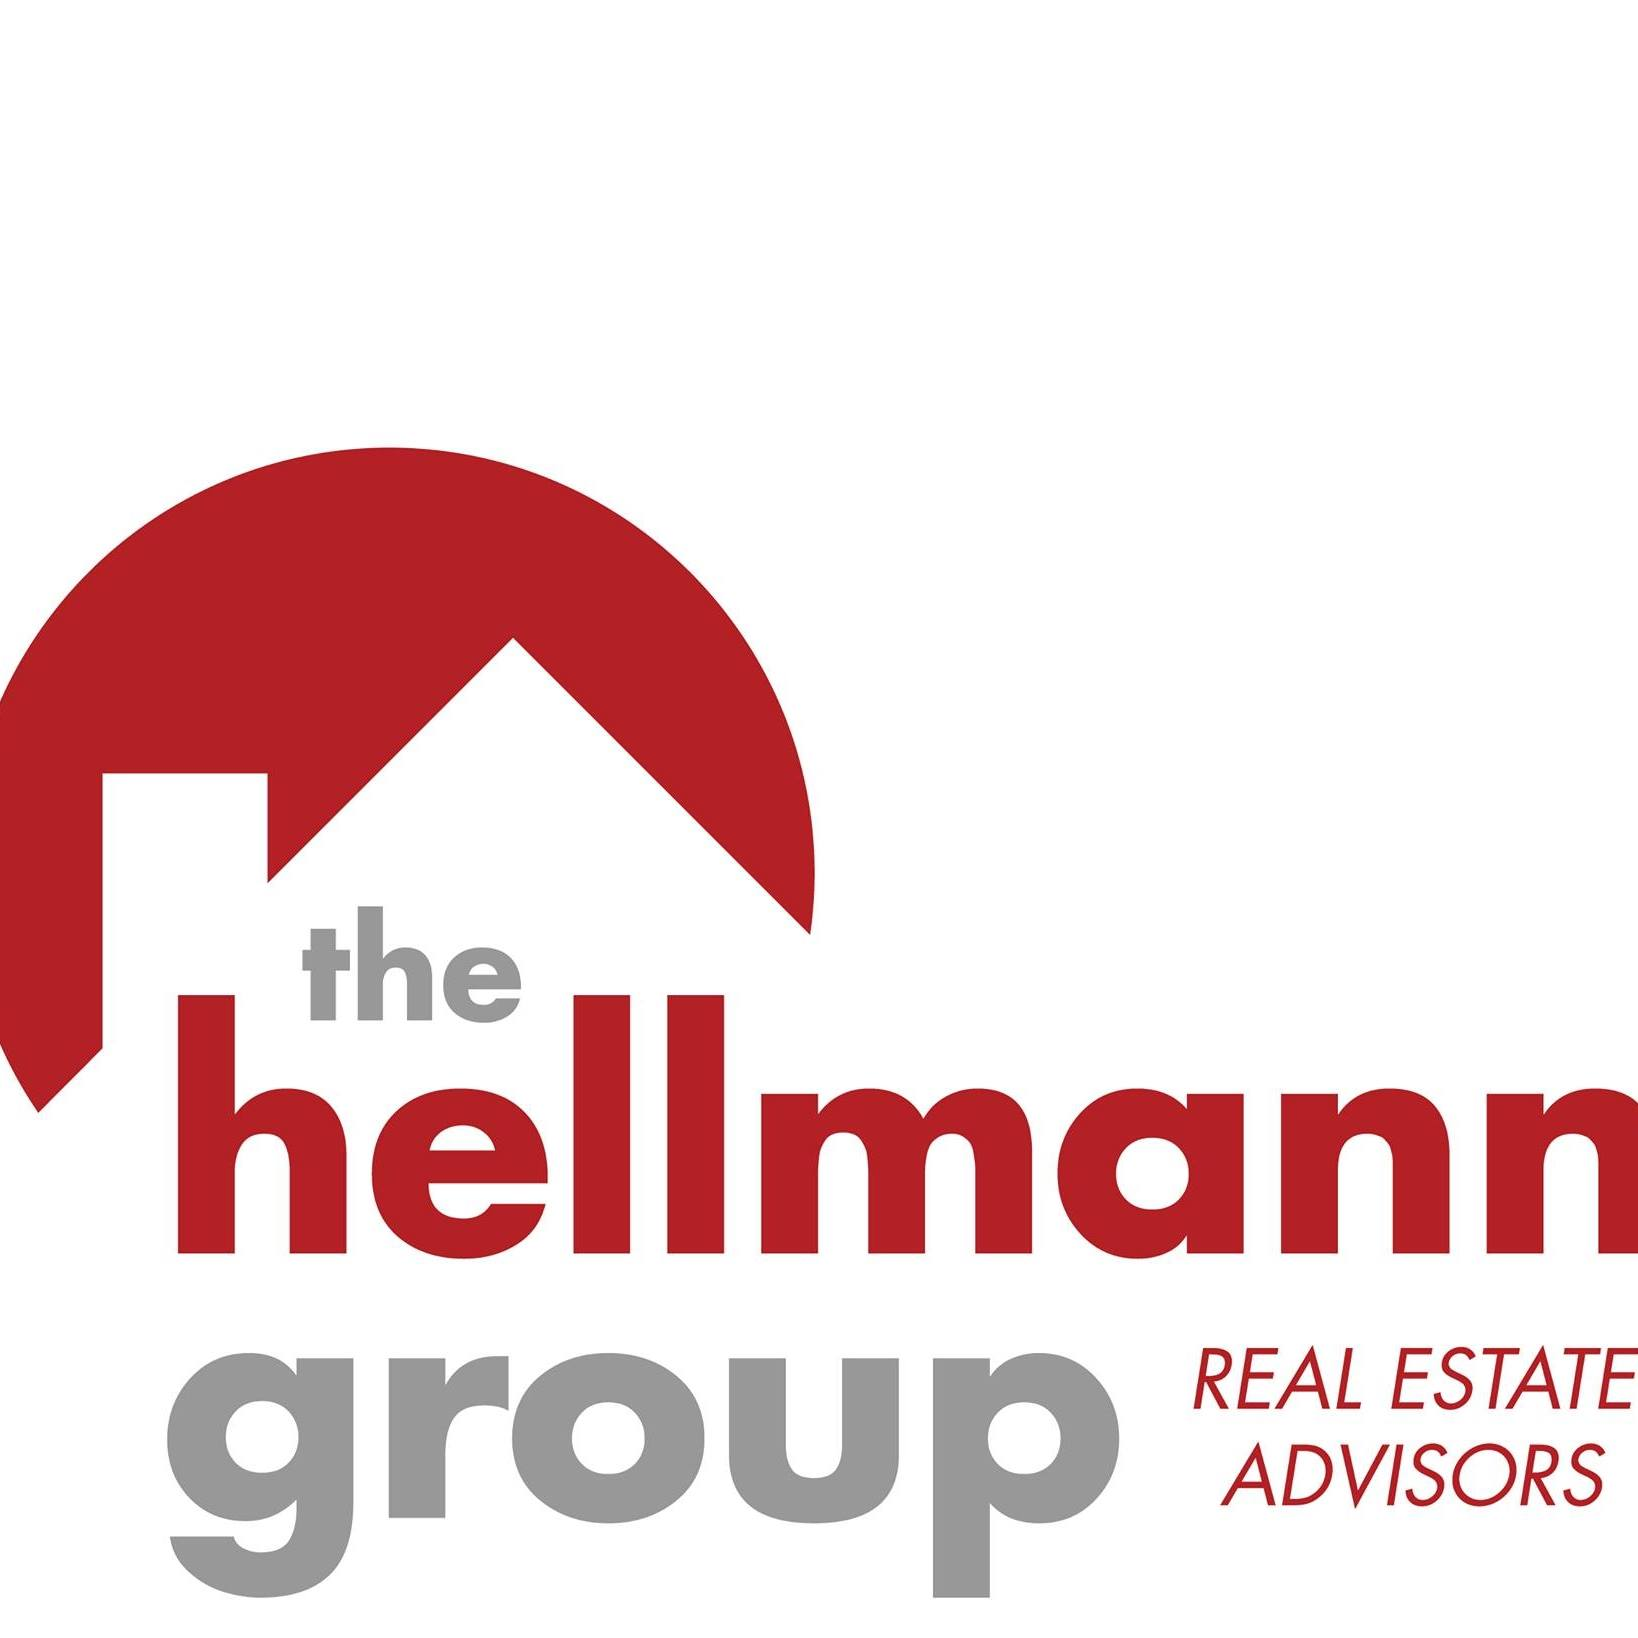 Sean Hellmann Group logo